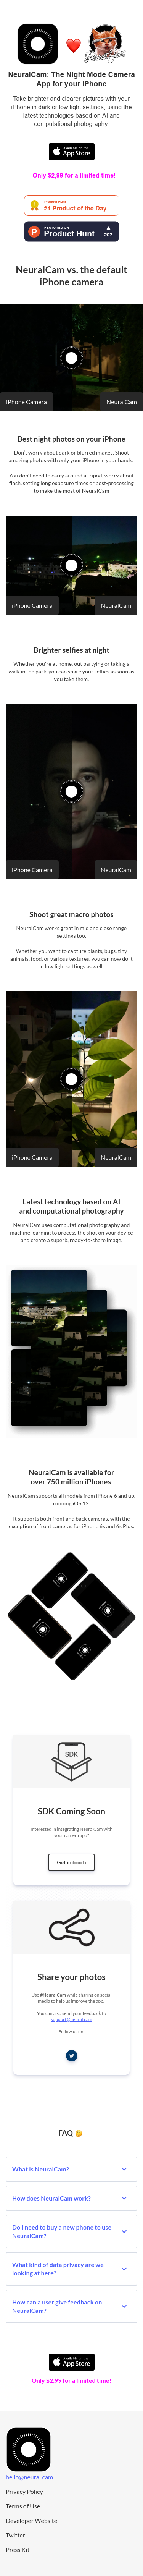 Example of Design for Internet & Telecom, Mobile & Wireless, Mobile Apps & Add-Ons, Mobile Landing Page by neural.cam   Mobile Landing Page Design